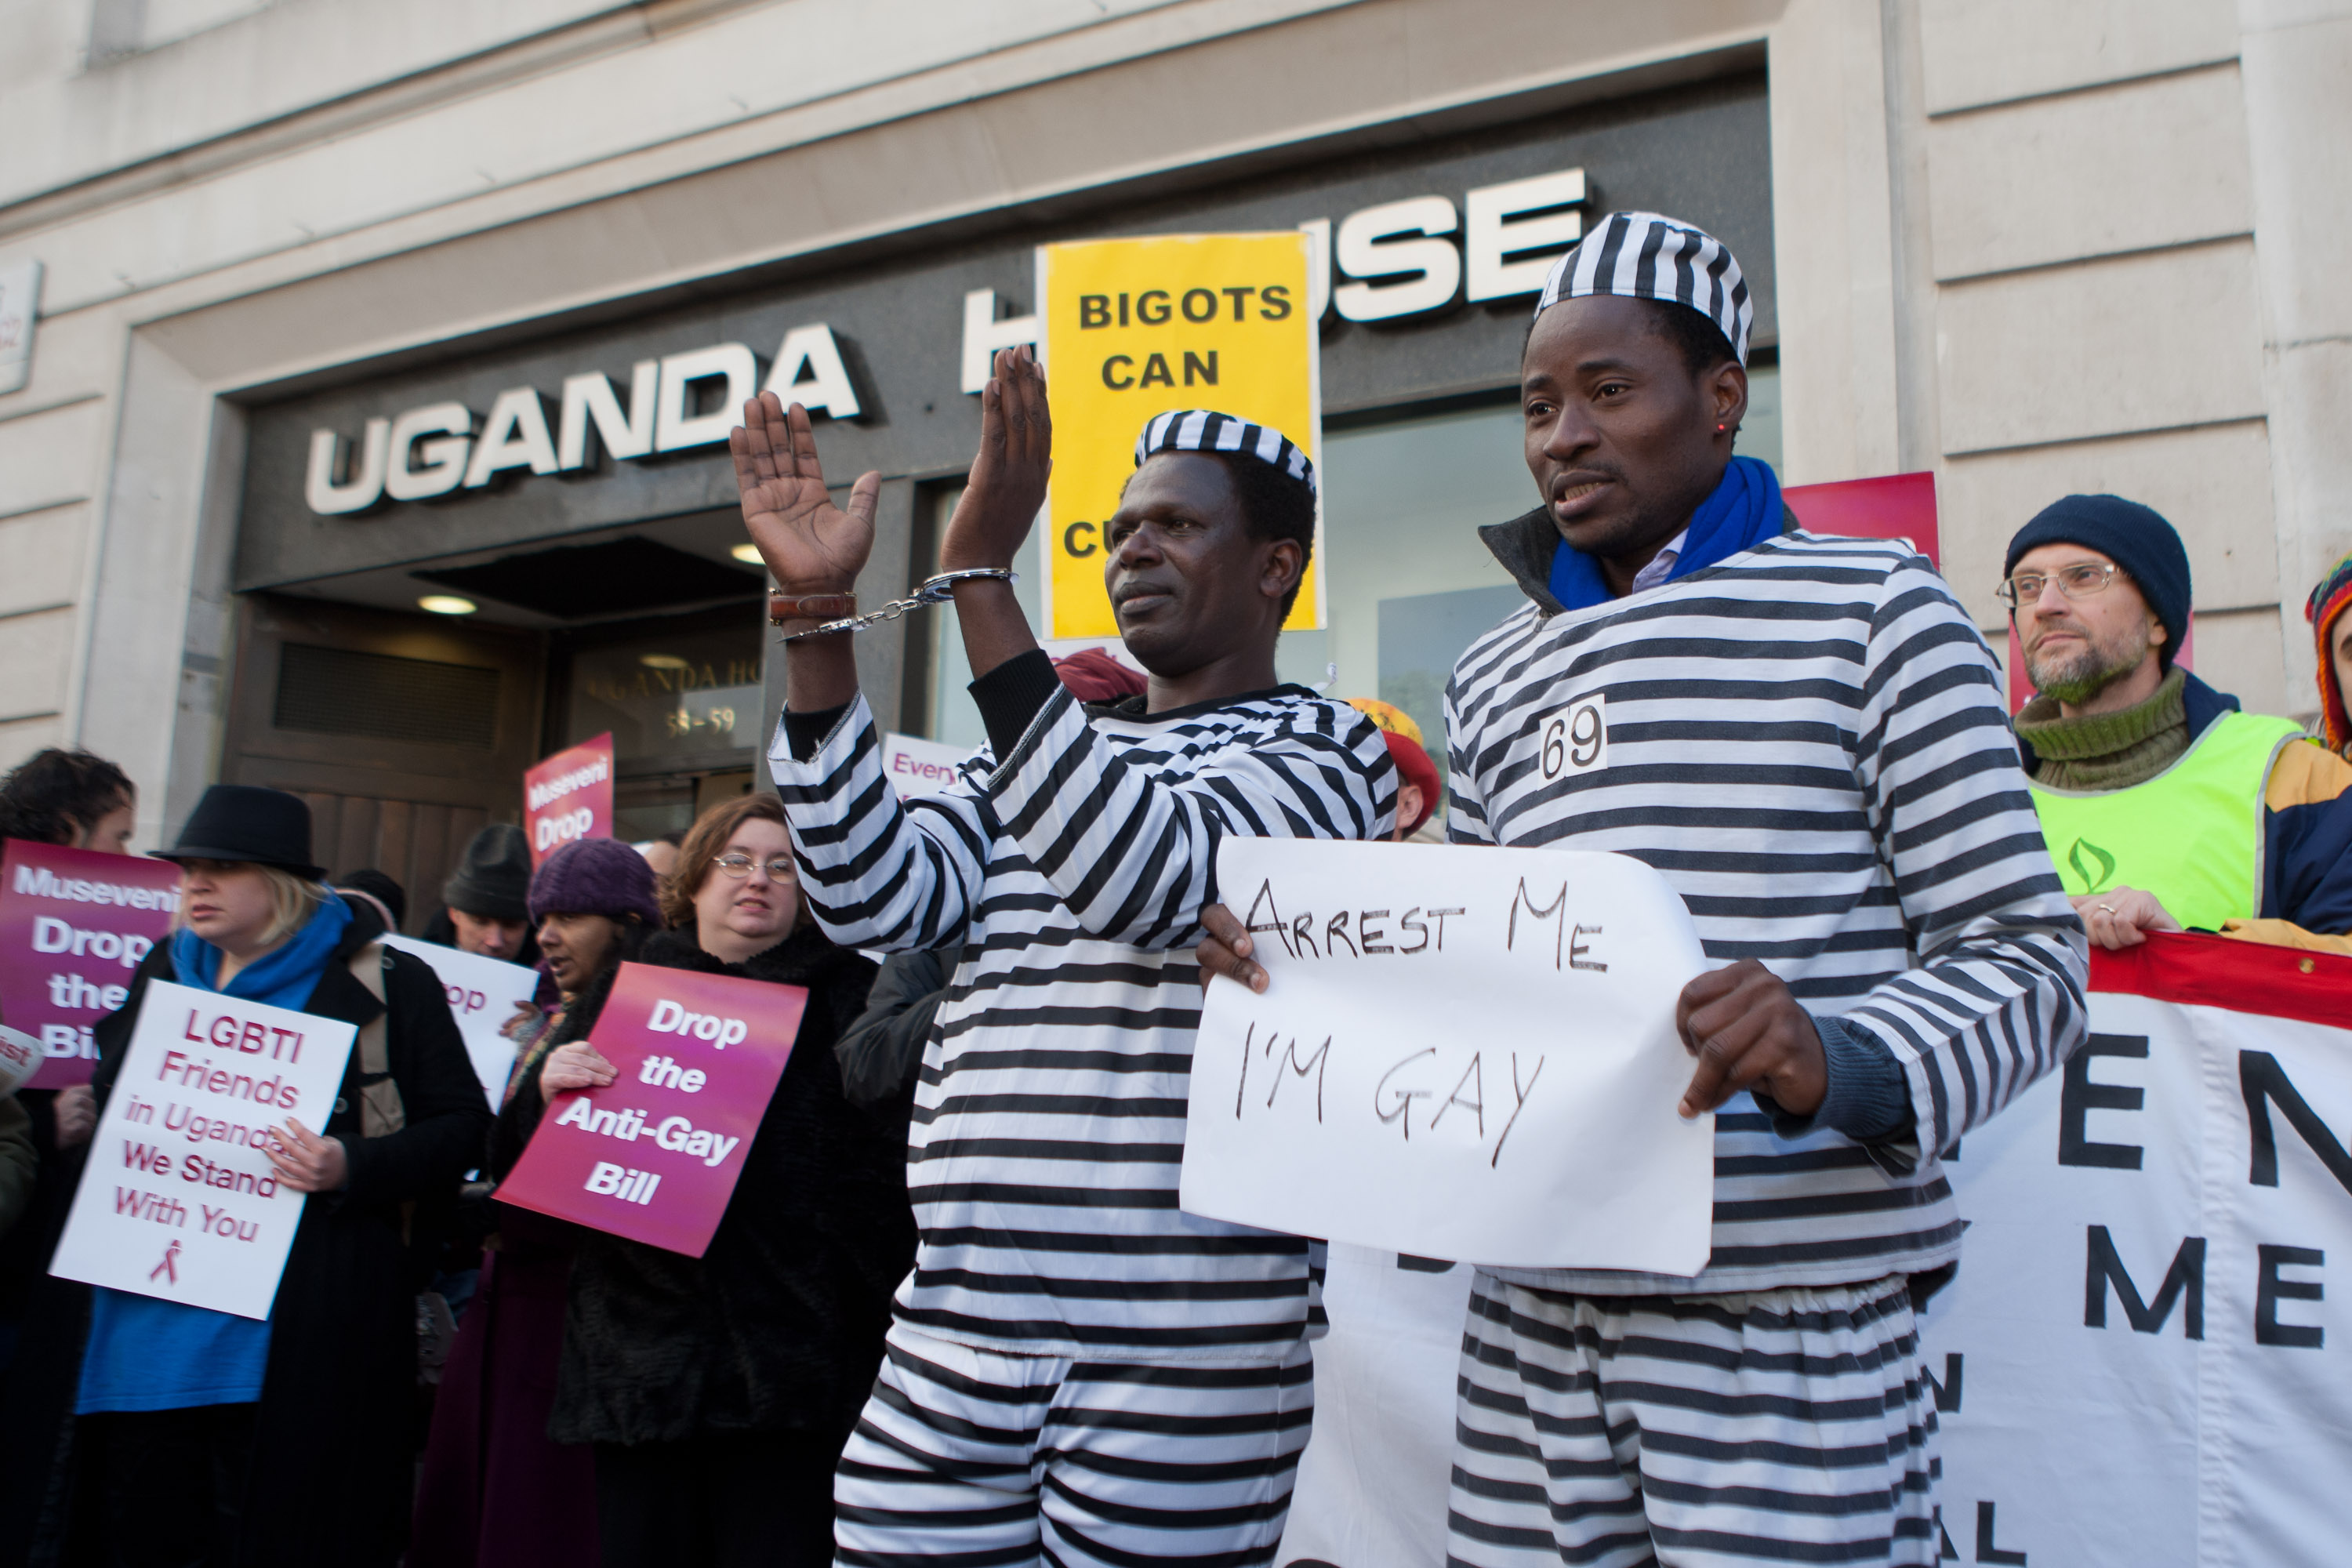 Protest against Uganda anti-gay legislation